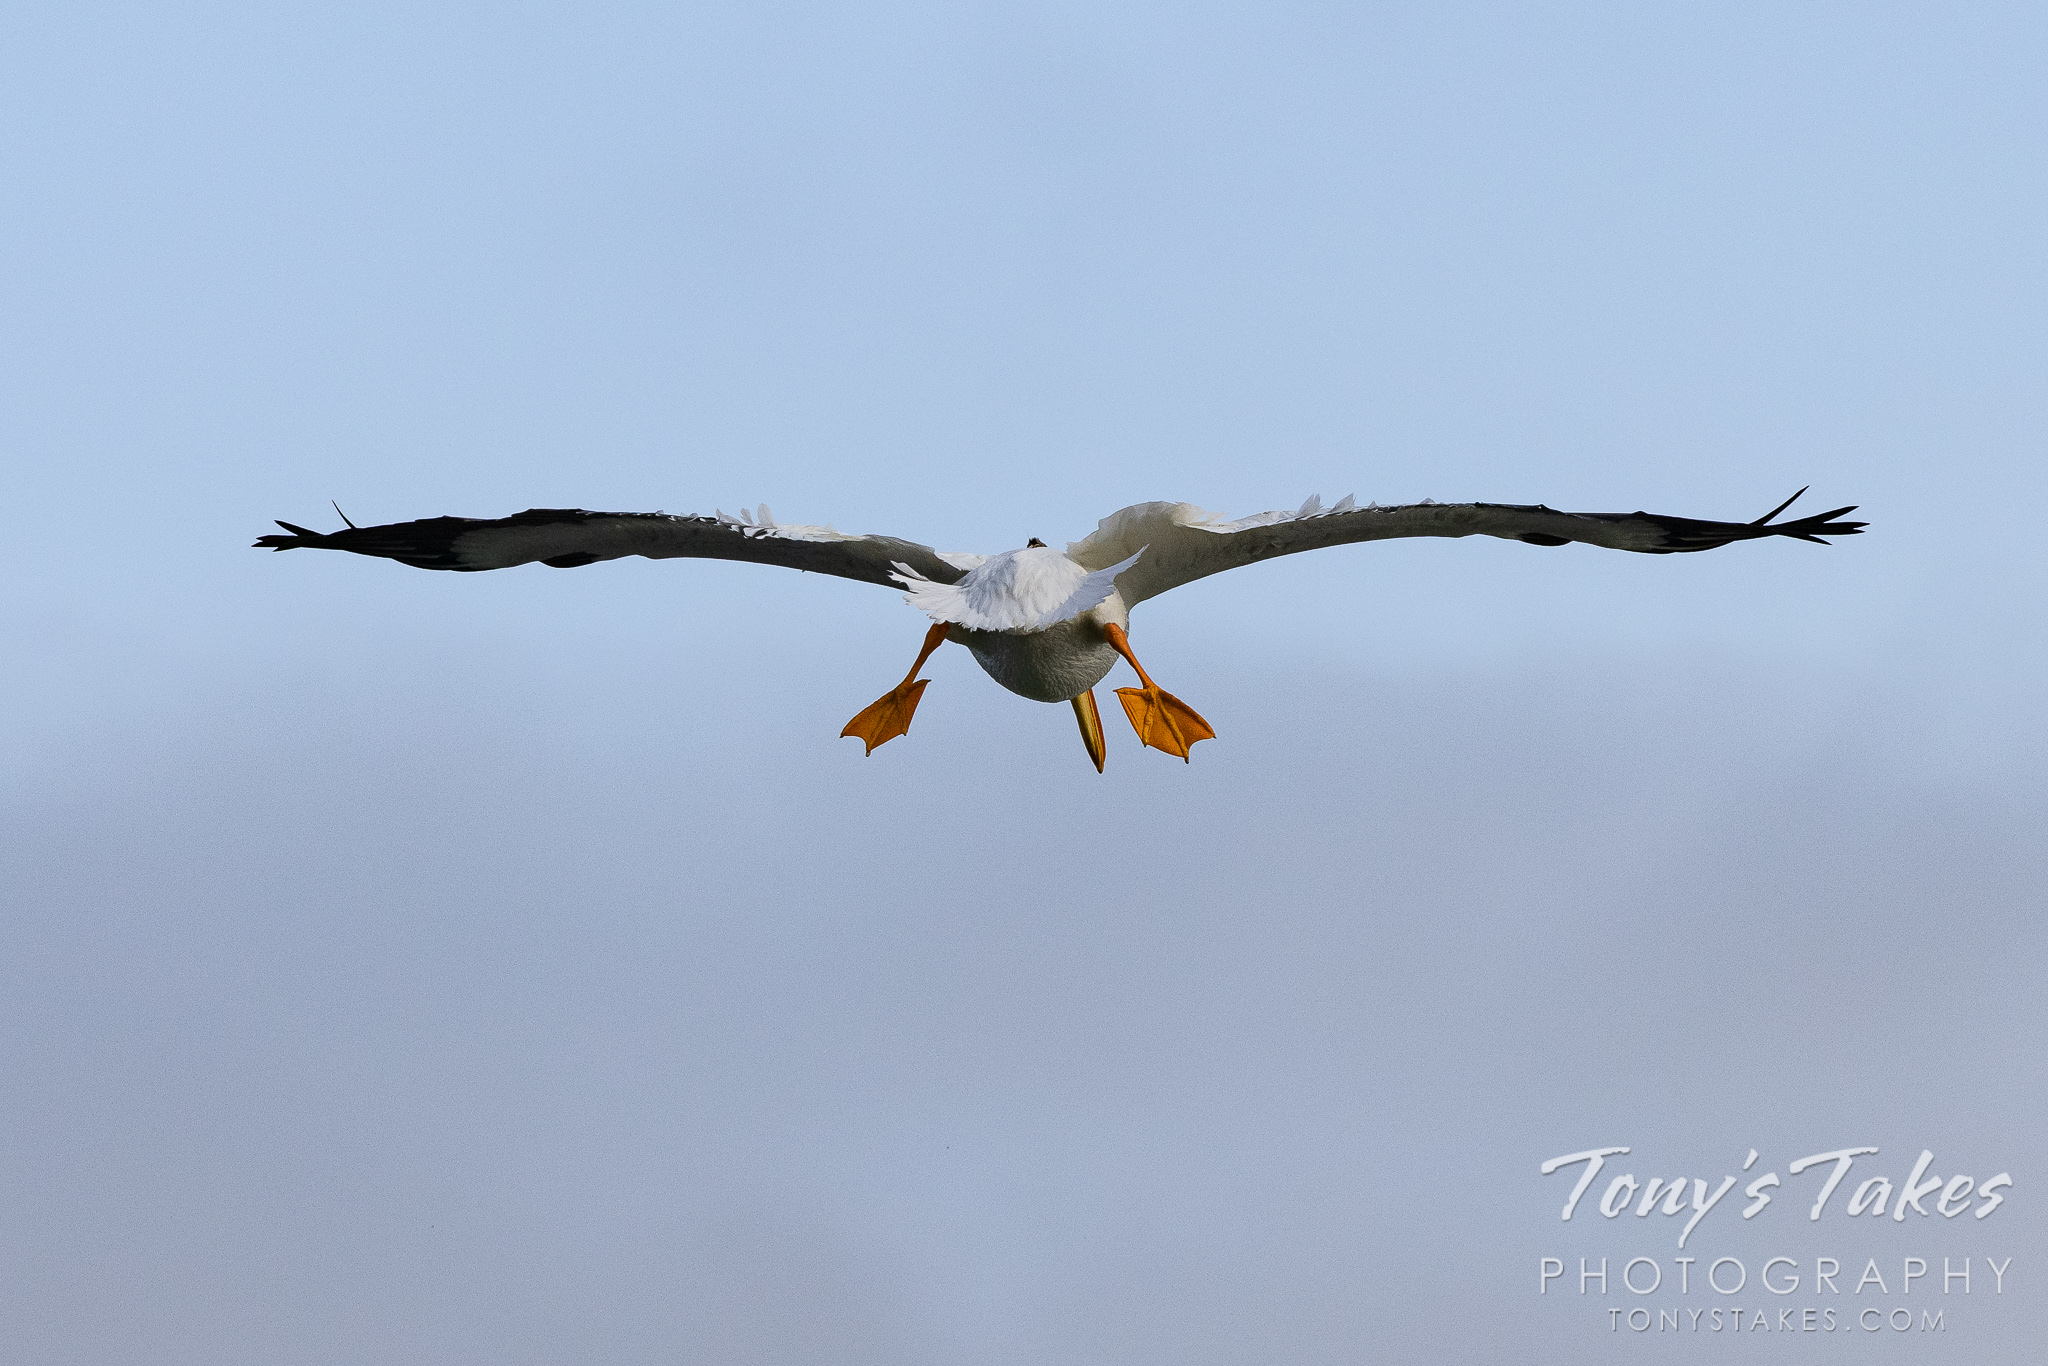 An American white pelican prepares to land on a pond. (© Tony's Takes)